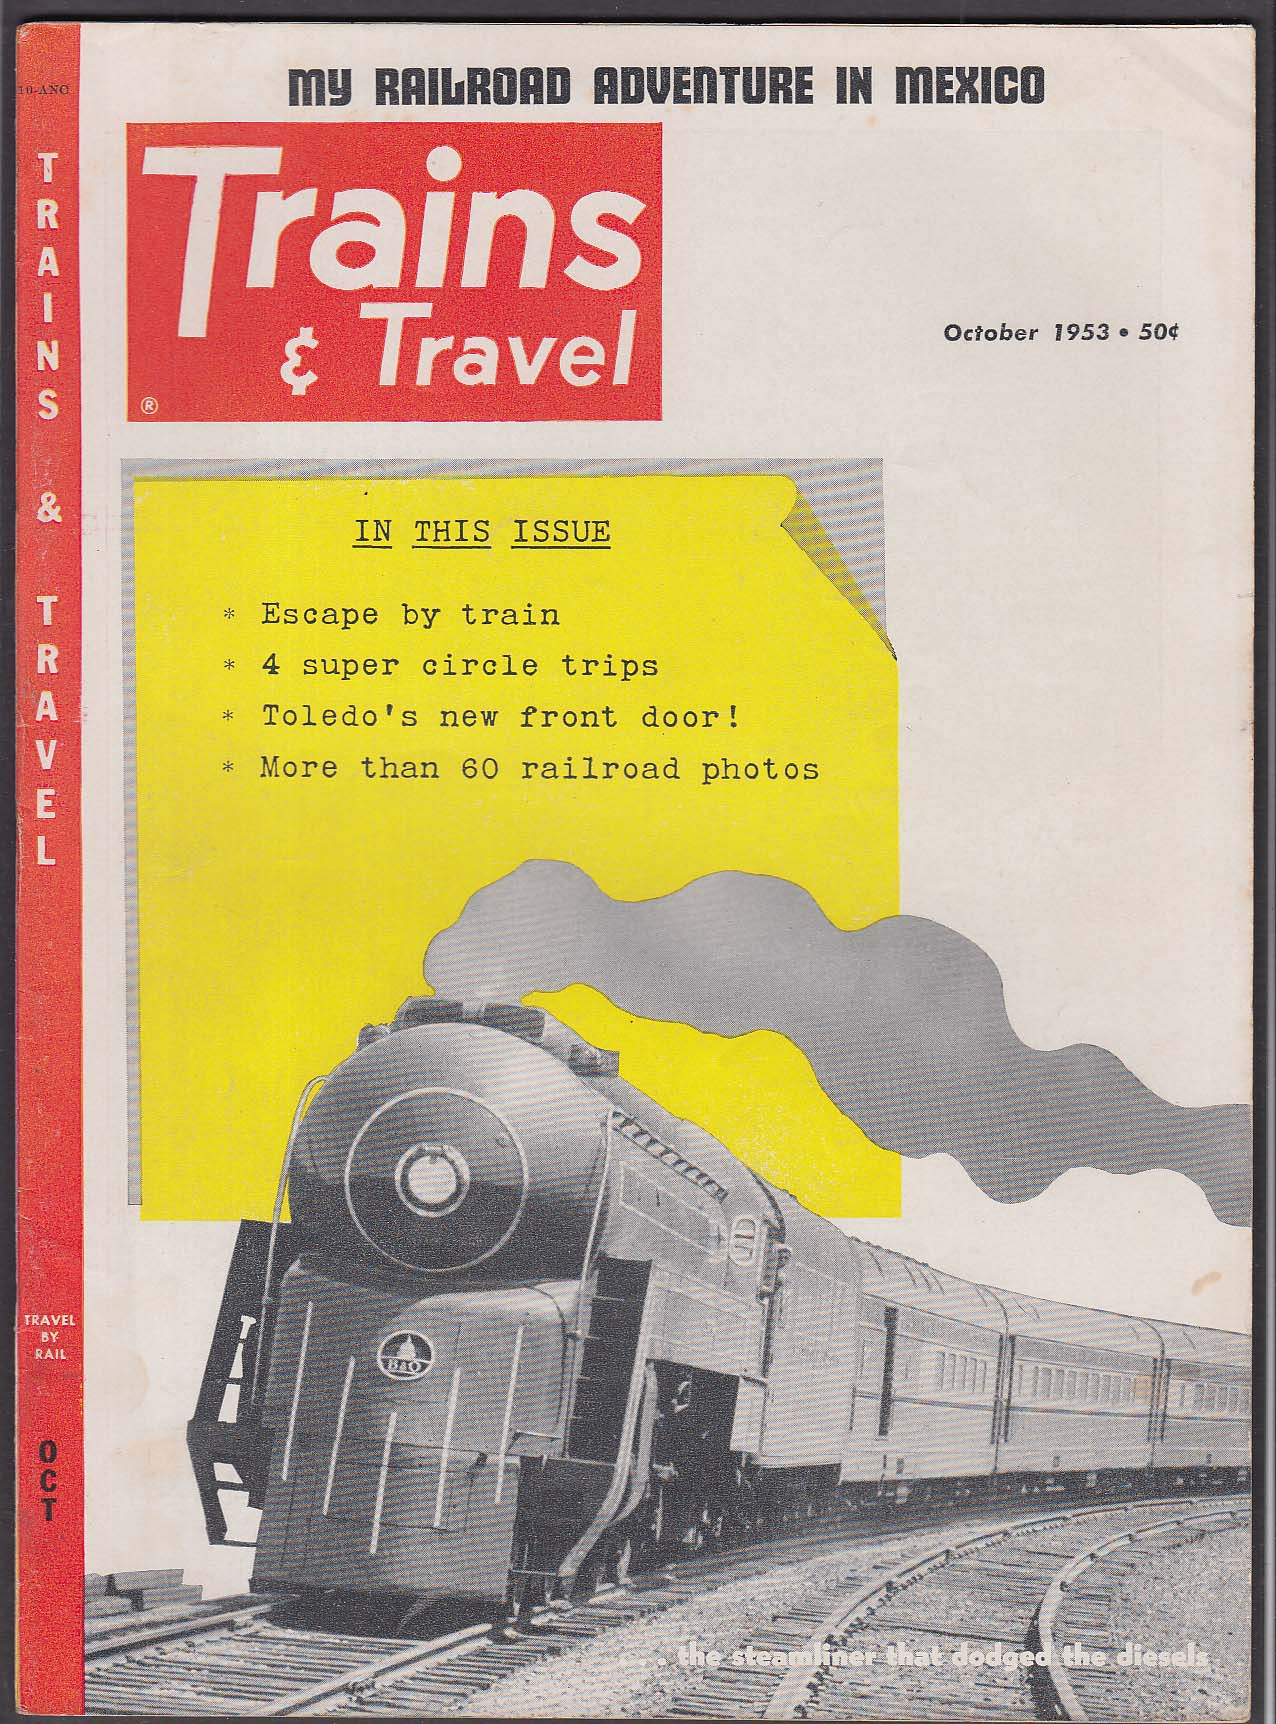 TRAINS & TRAVEL Cleveland Toledo Mexico B&O California Zephyr + 10 1953